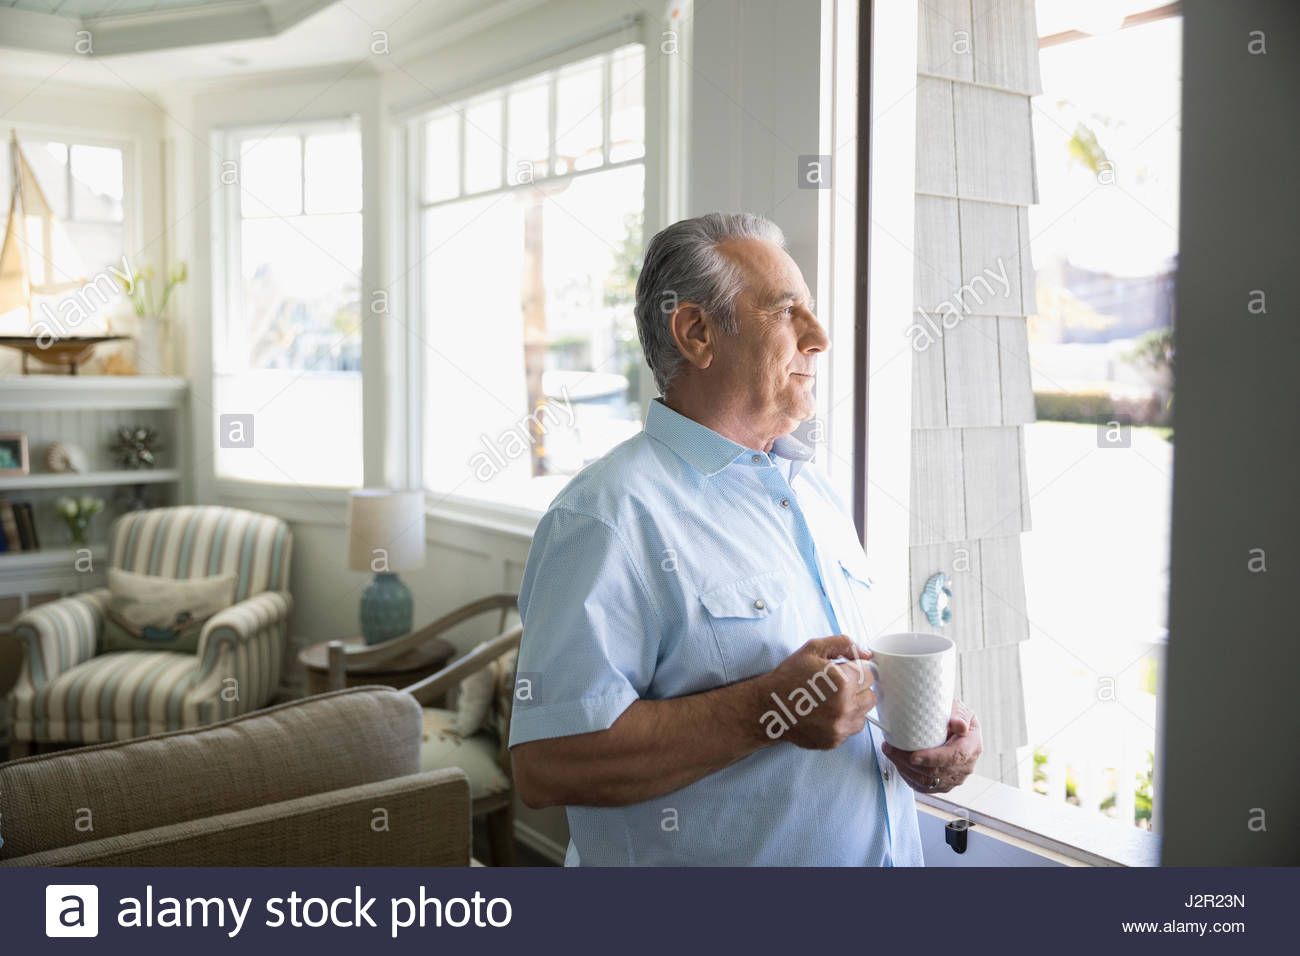 Senior man drinking coffee and looking out window in beach house - Stock Image